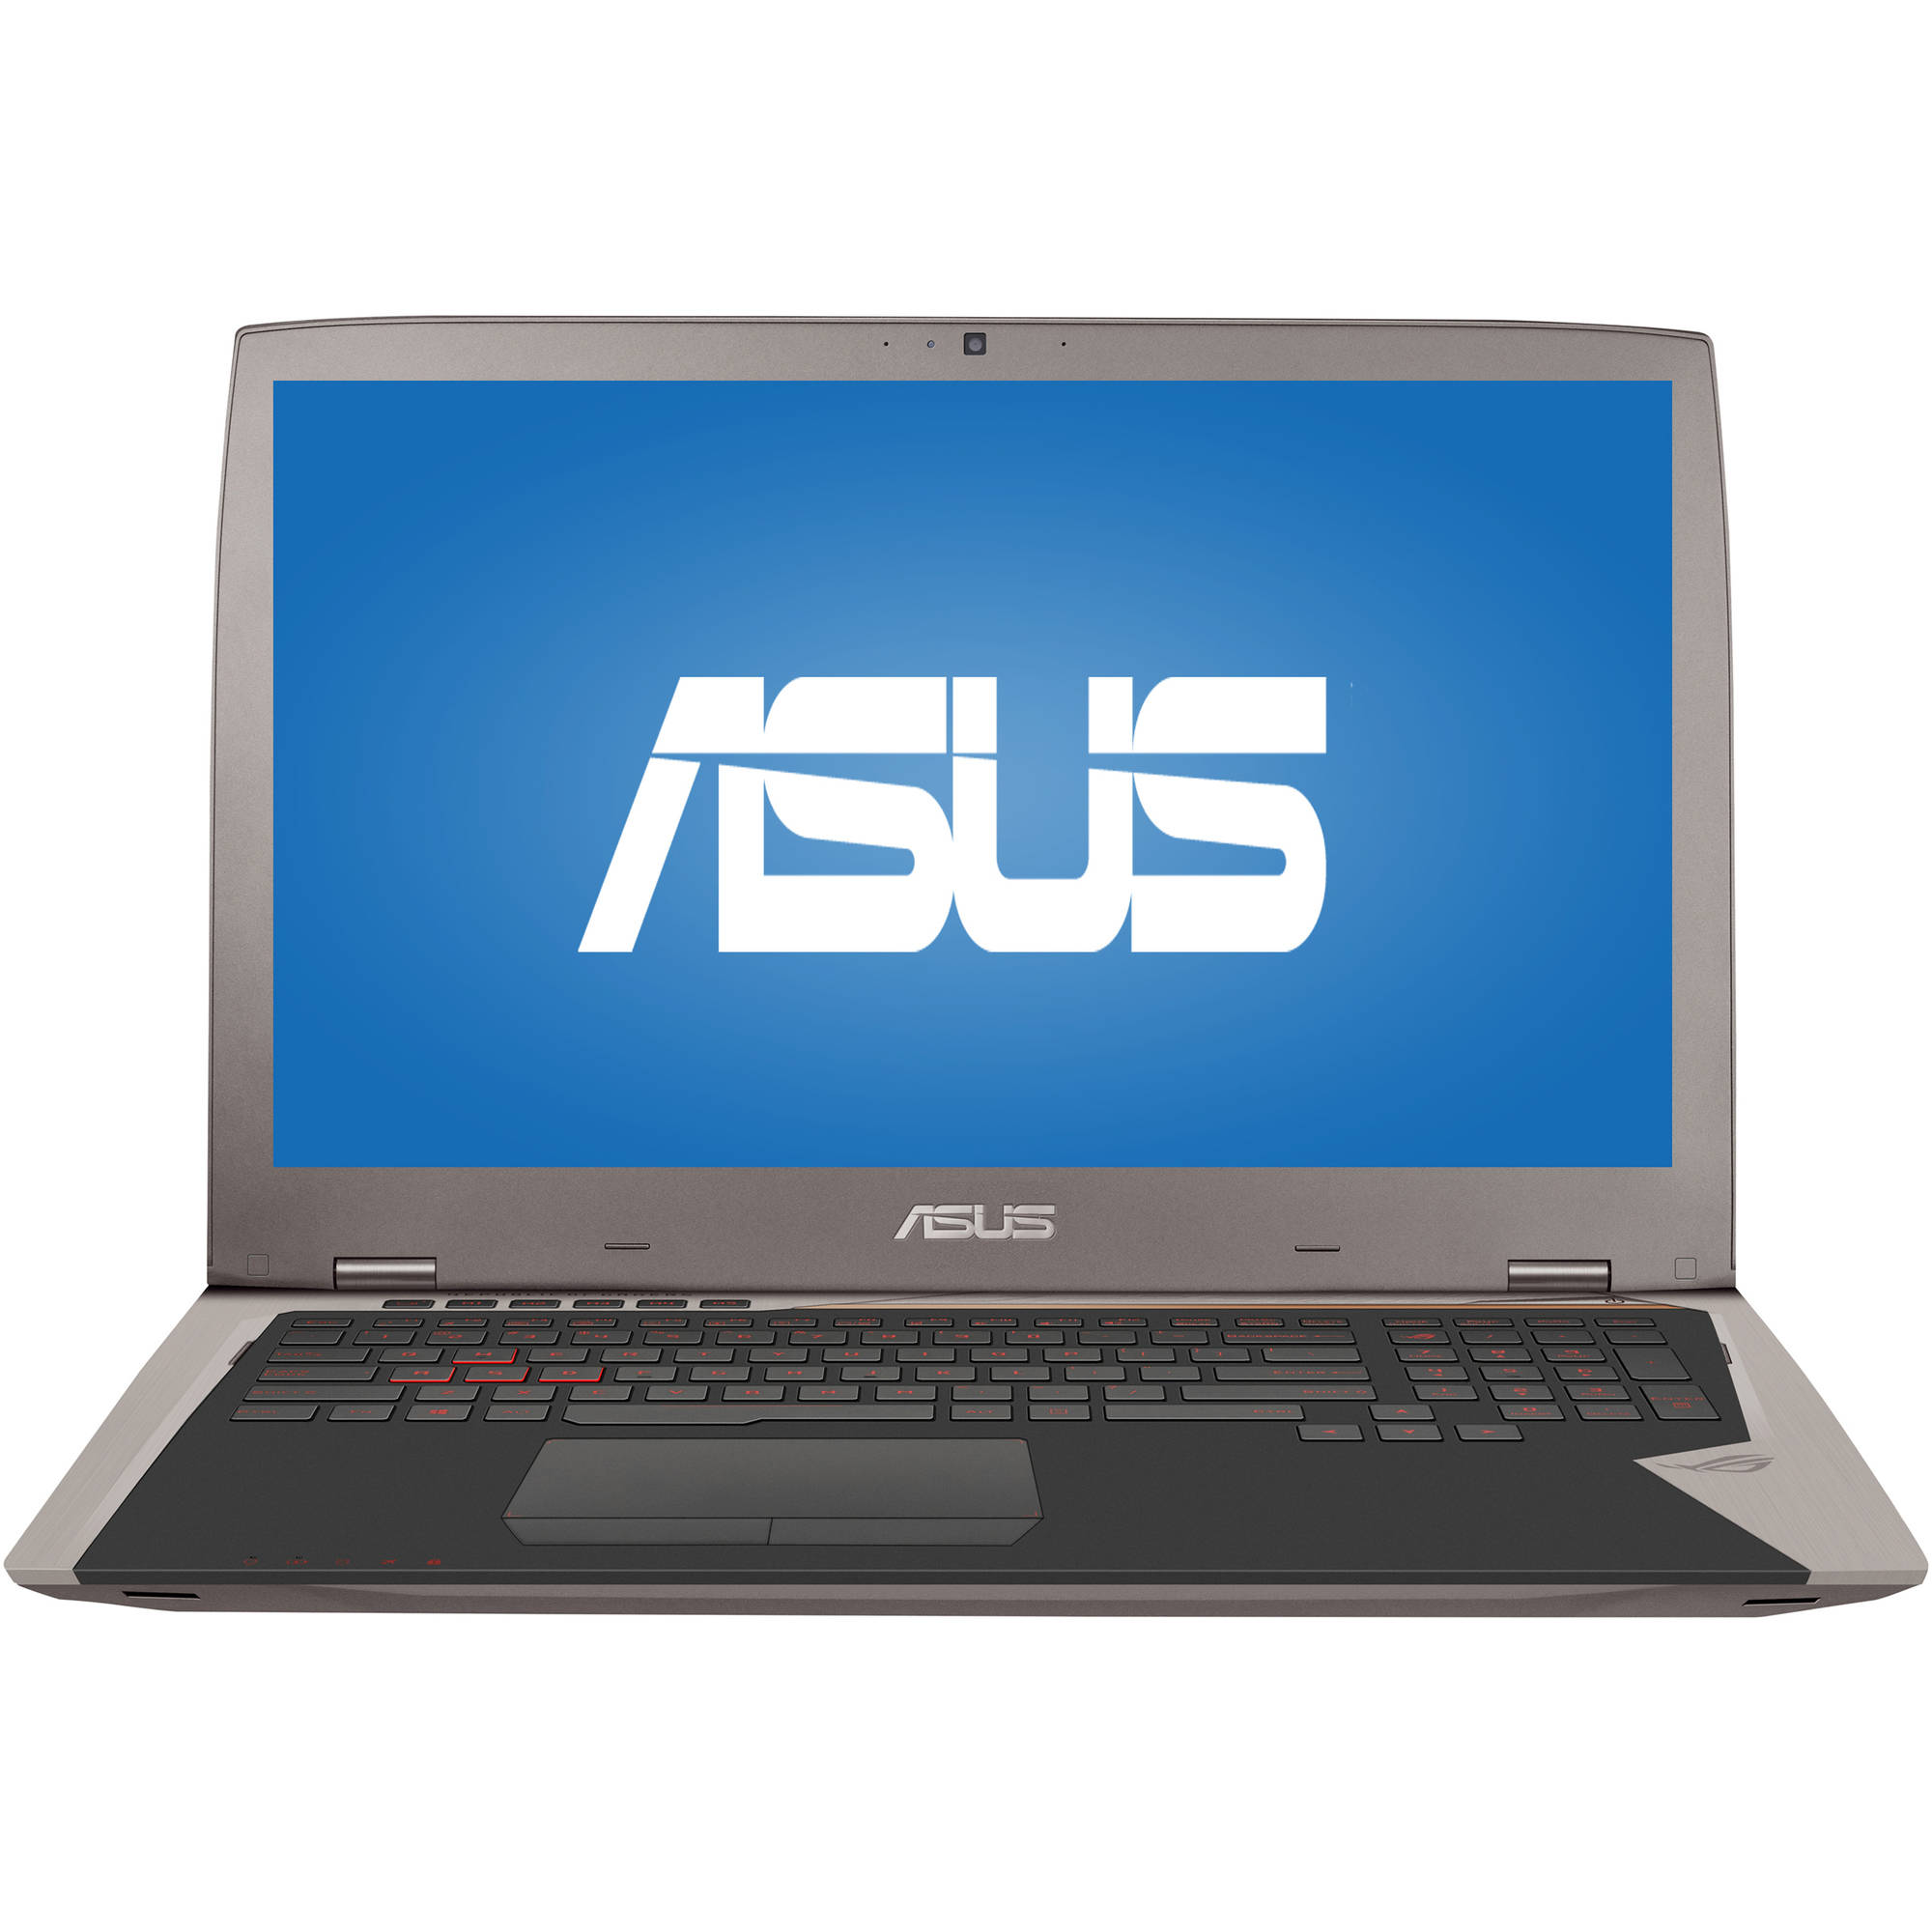 "ASUS Republic of Gamers 90NB0E61-M00120 17.3"" Gaming Laptop, Windows 10 Professional, Intel Core i7-6820HK... by ASUS"